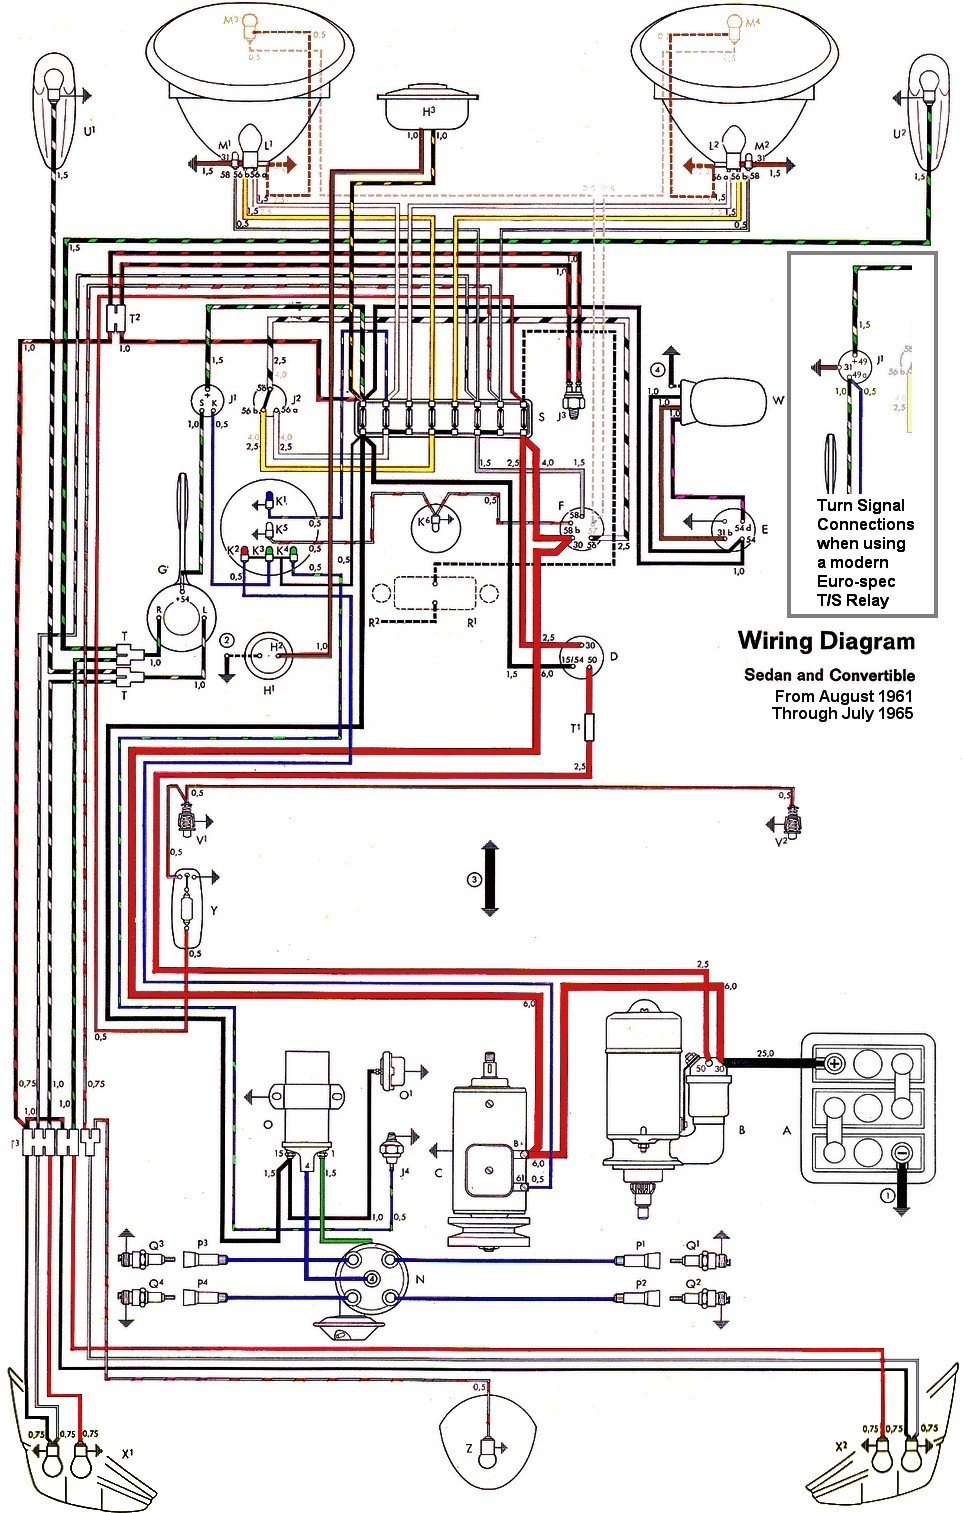 bug_62 65withinset thesamba com type 1 wiring diagrams 1970 vw bug wiring diagram at panicattacktreatment.co